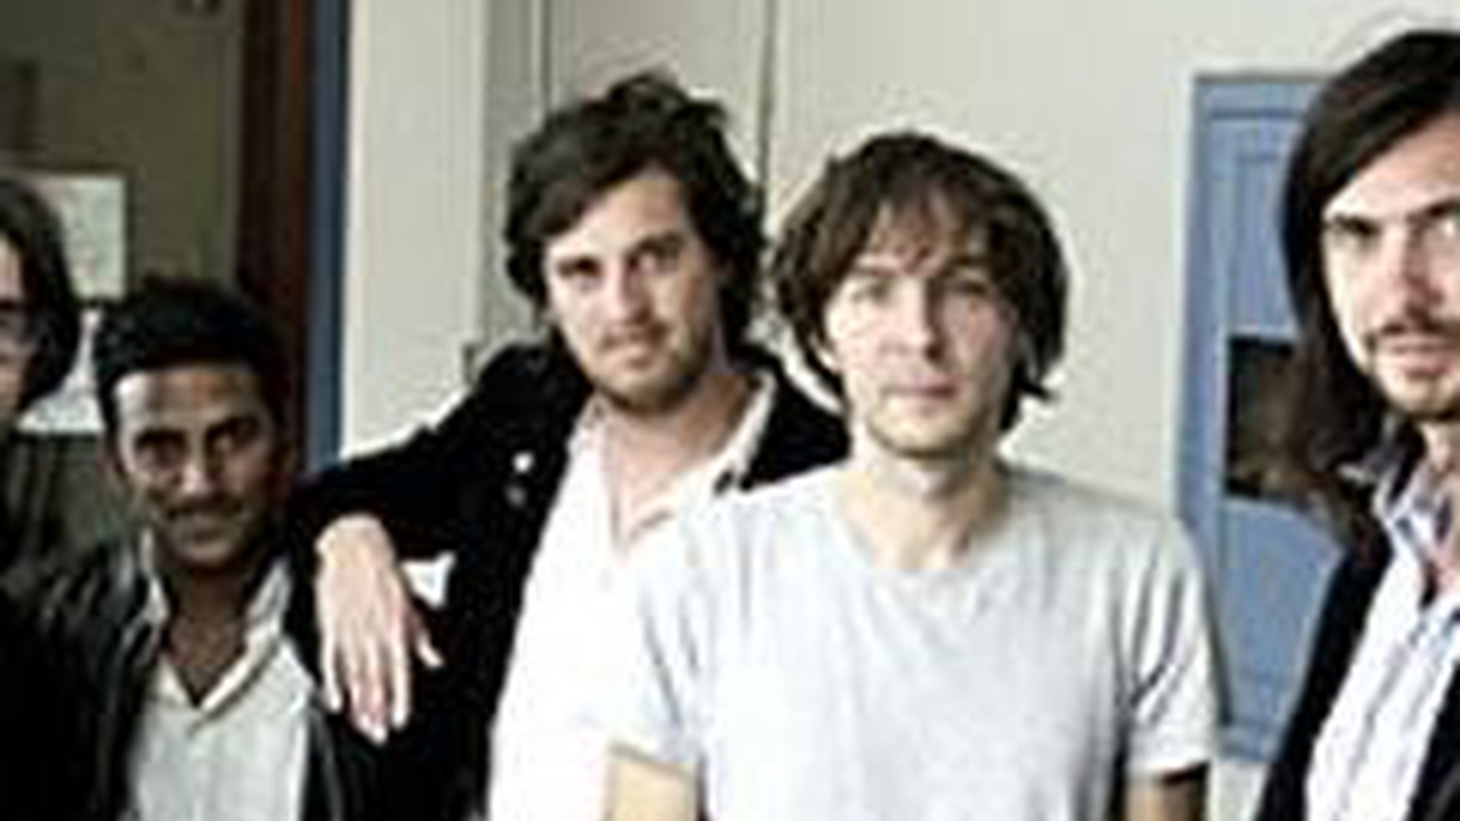 The French pop band, Phoenix, play their upbeat, pop-synth sounds on Morning Becomes Eclectic.